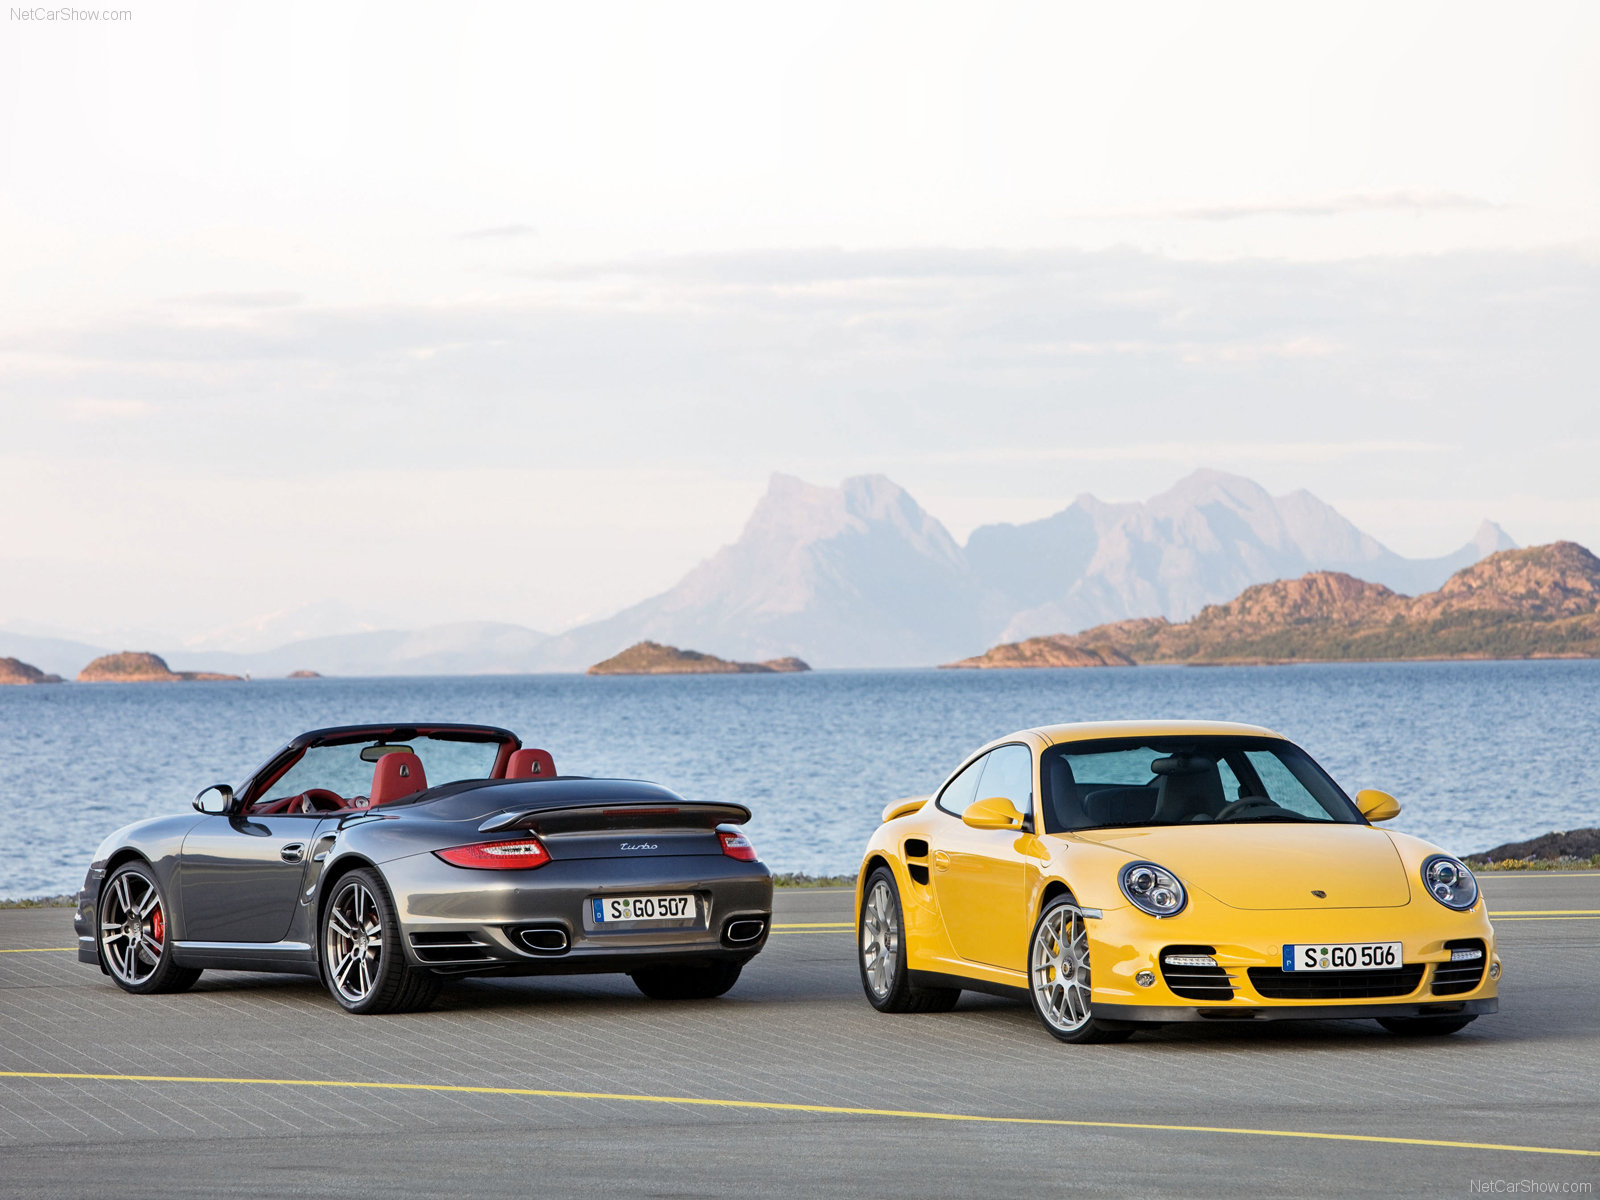 2010 Yellow Porsche 911 Turbo Wallpaper Front angle side view 1600x1200